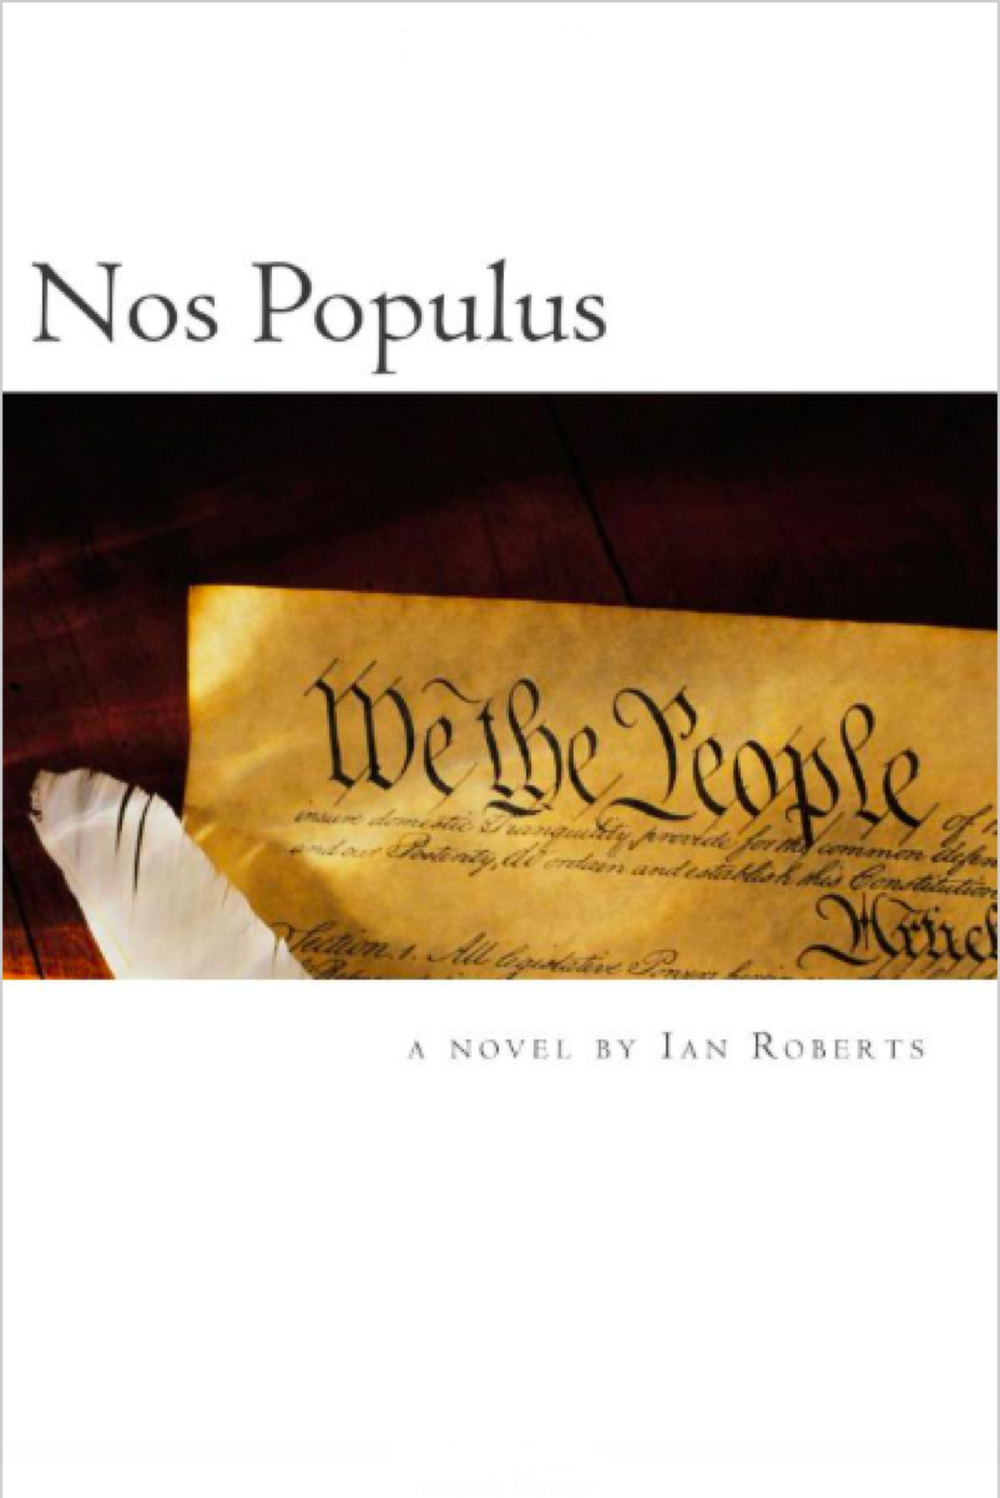 Nos Populus, a novel, by Ian Roberts  978-0-9859044-8-7   Goodreads  -  Google Books   $9.00 paperback $6.99 download  Available as a paperback or eBook from:  Amazon  Available as an eBook only from:  aois21 market  -  Smashwords  -   KoboBooks      Barnes & Noble  -  Google Play  -   iBookstore